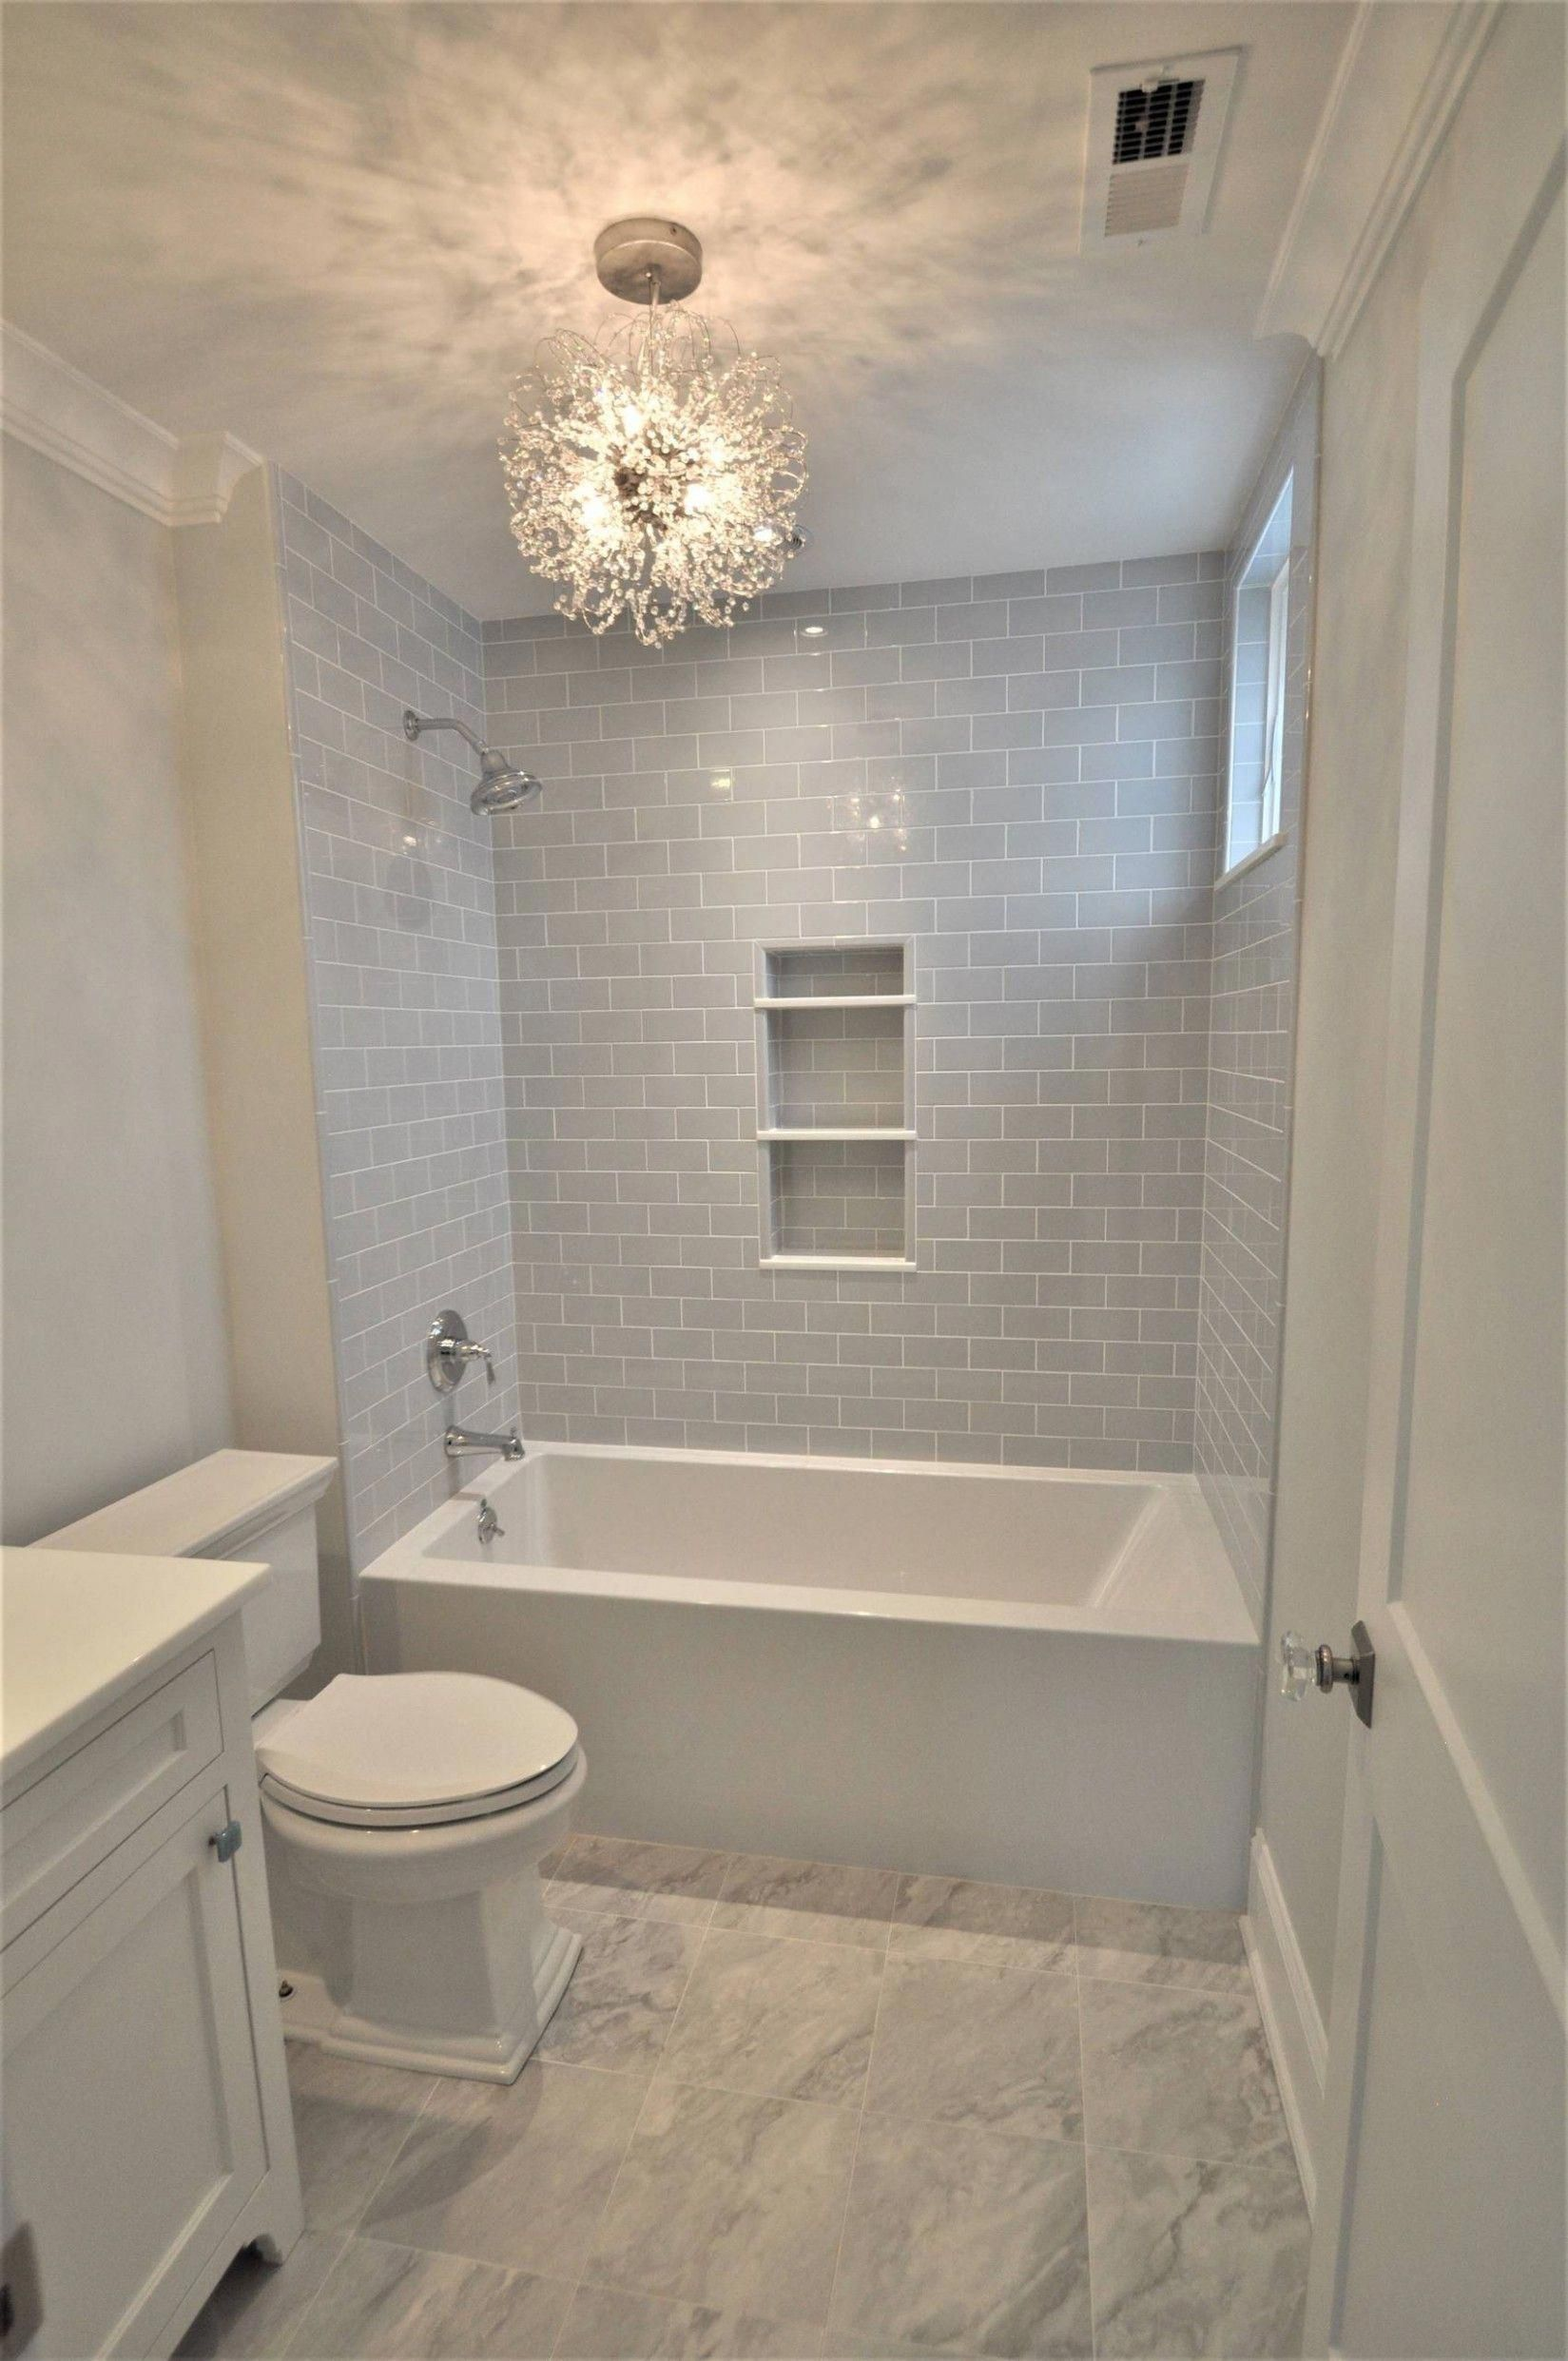 Small Bathroom Ideas With Tub Shower Combo In 2020 Bathroom Design Small Small Bathroom Small Bathroom Remodel